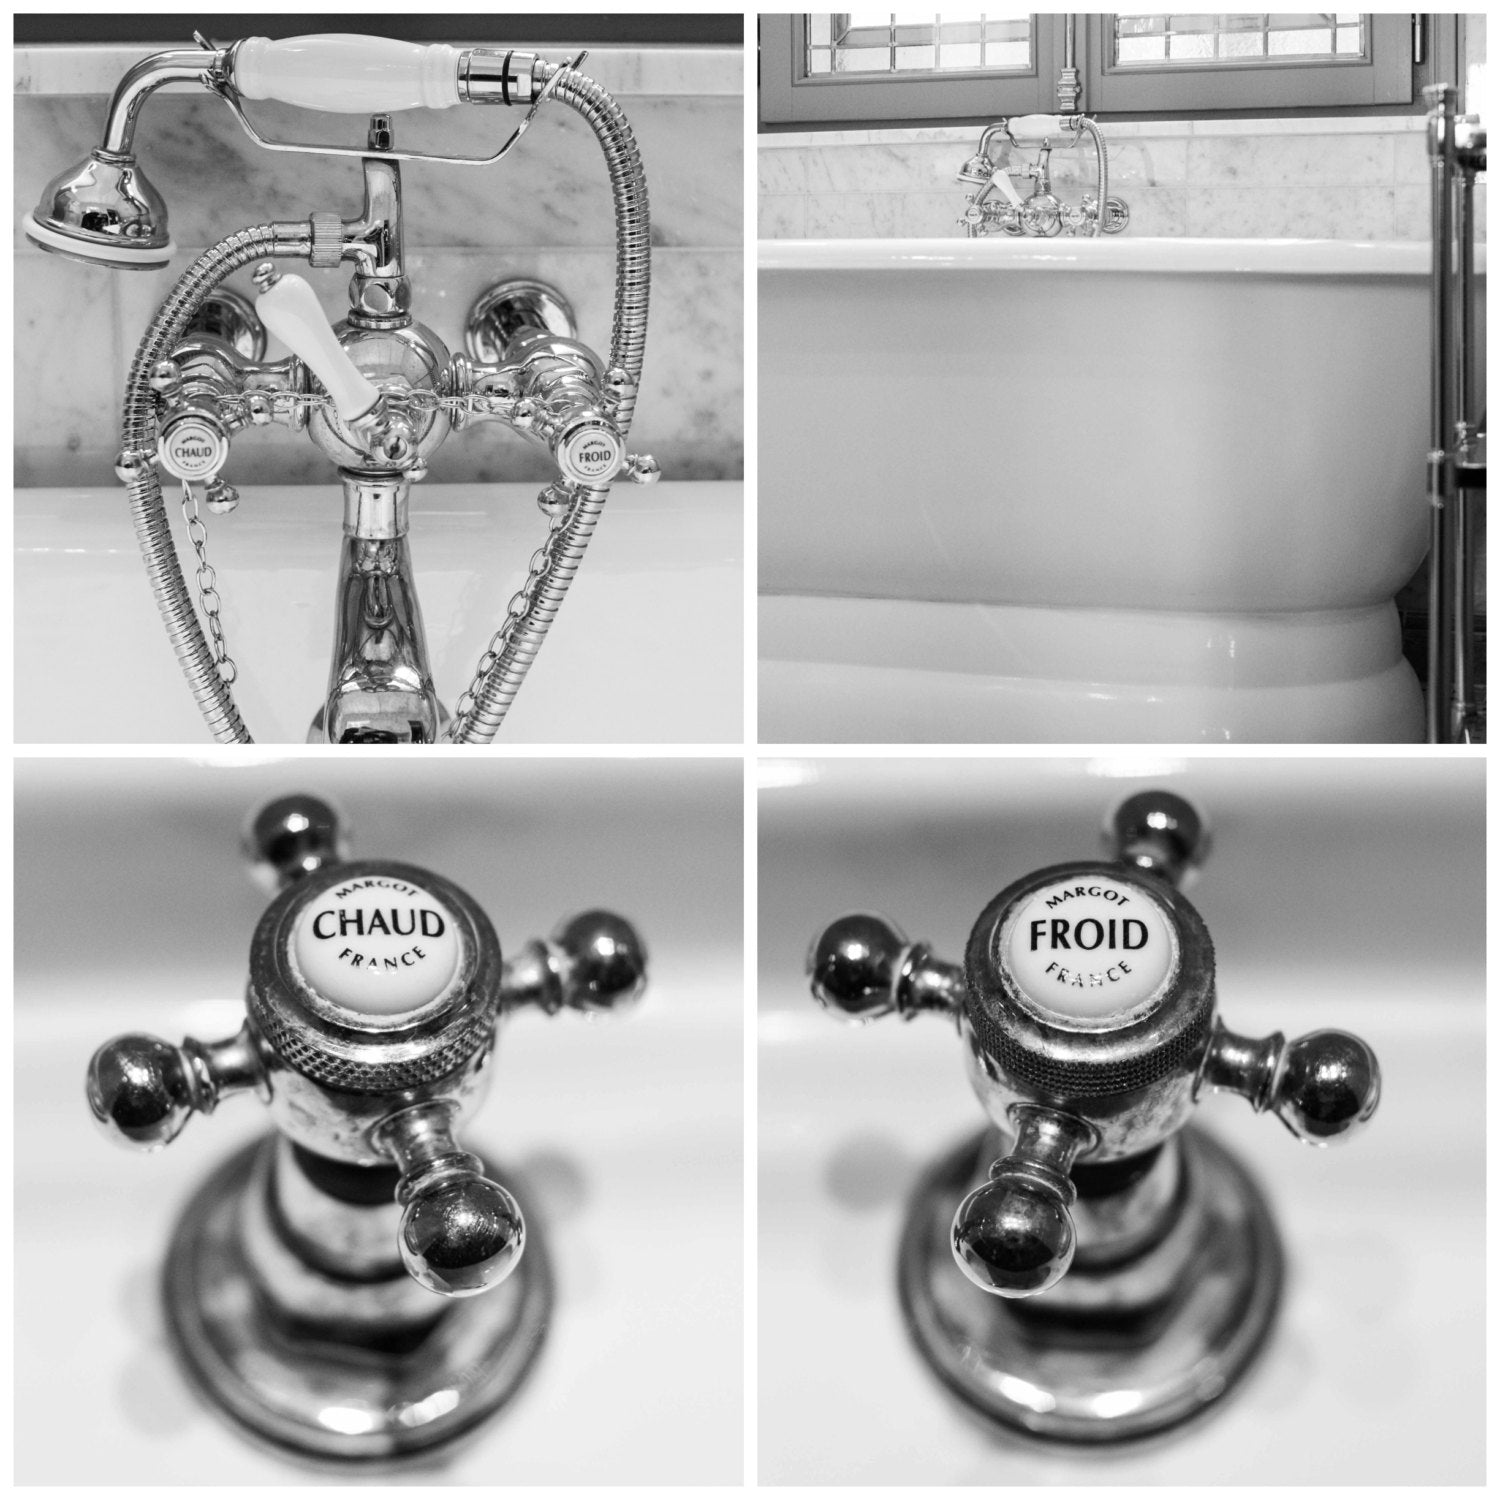 French hot and cold bathroom faucet set of 4 rebecca plotnick photography for French style bathroom faucets